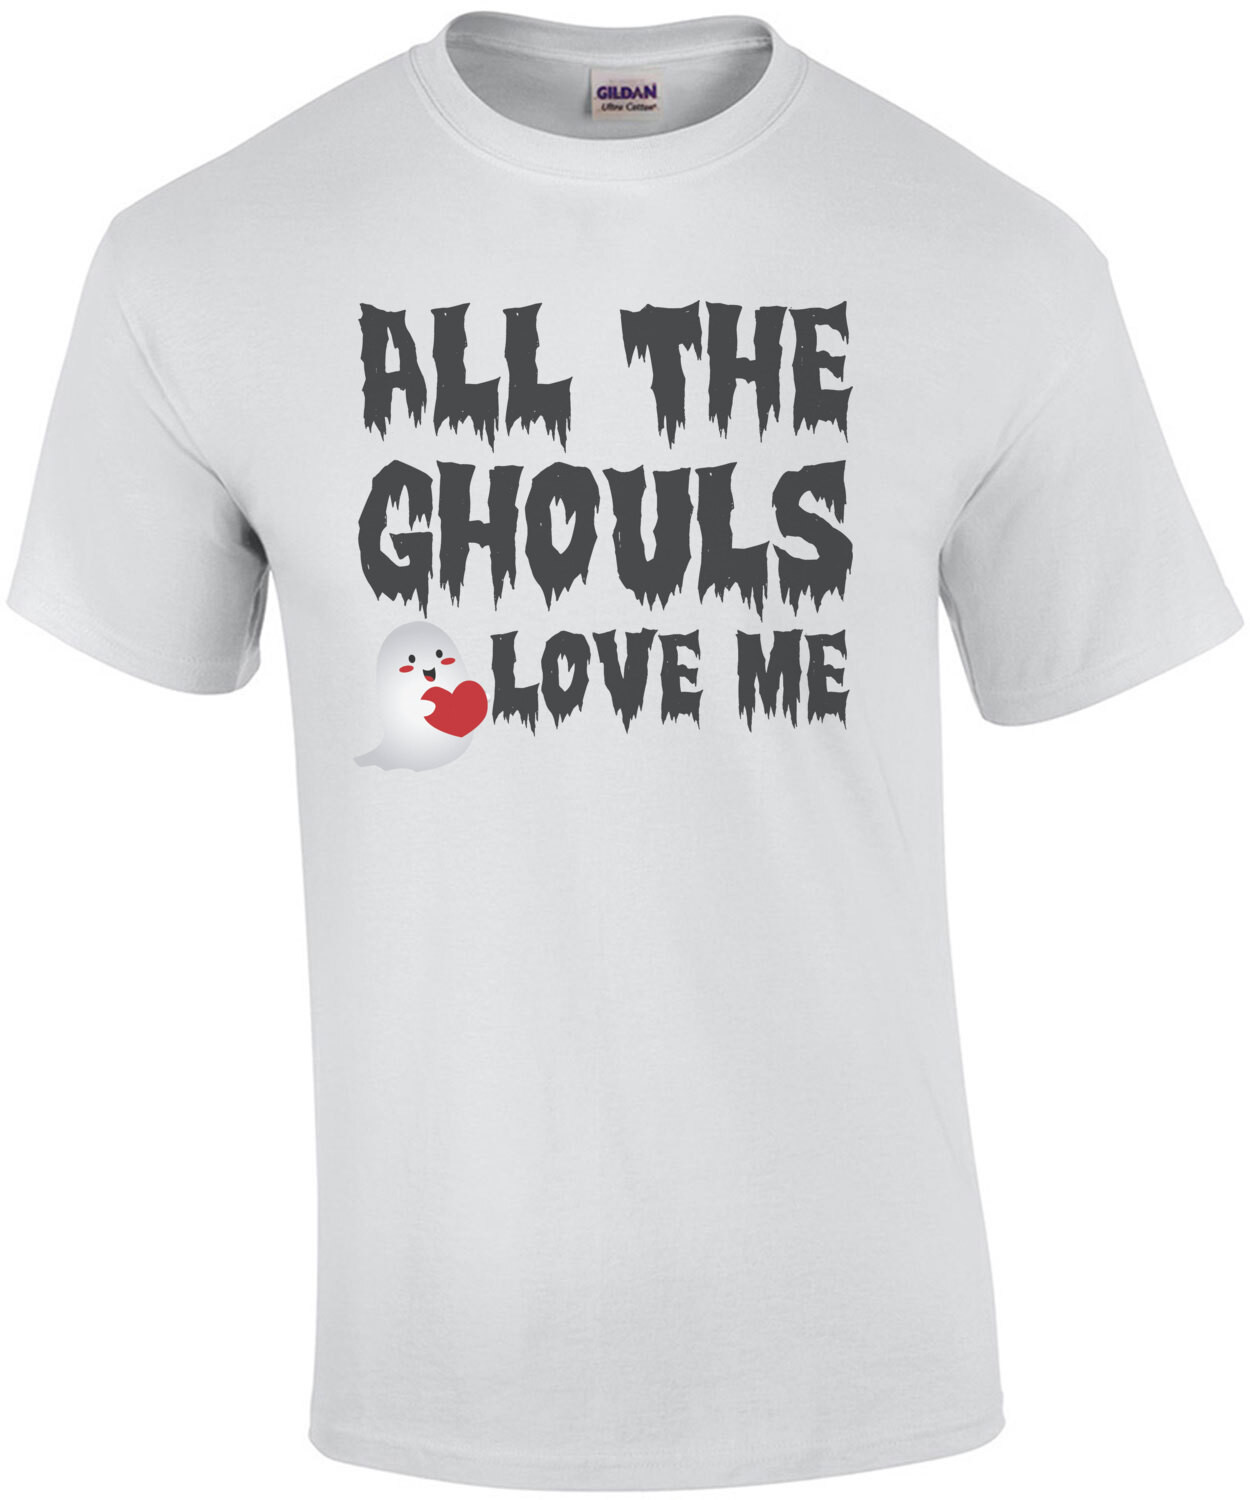 All the ghouls love me - funny halloween t-shirt